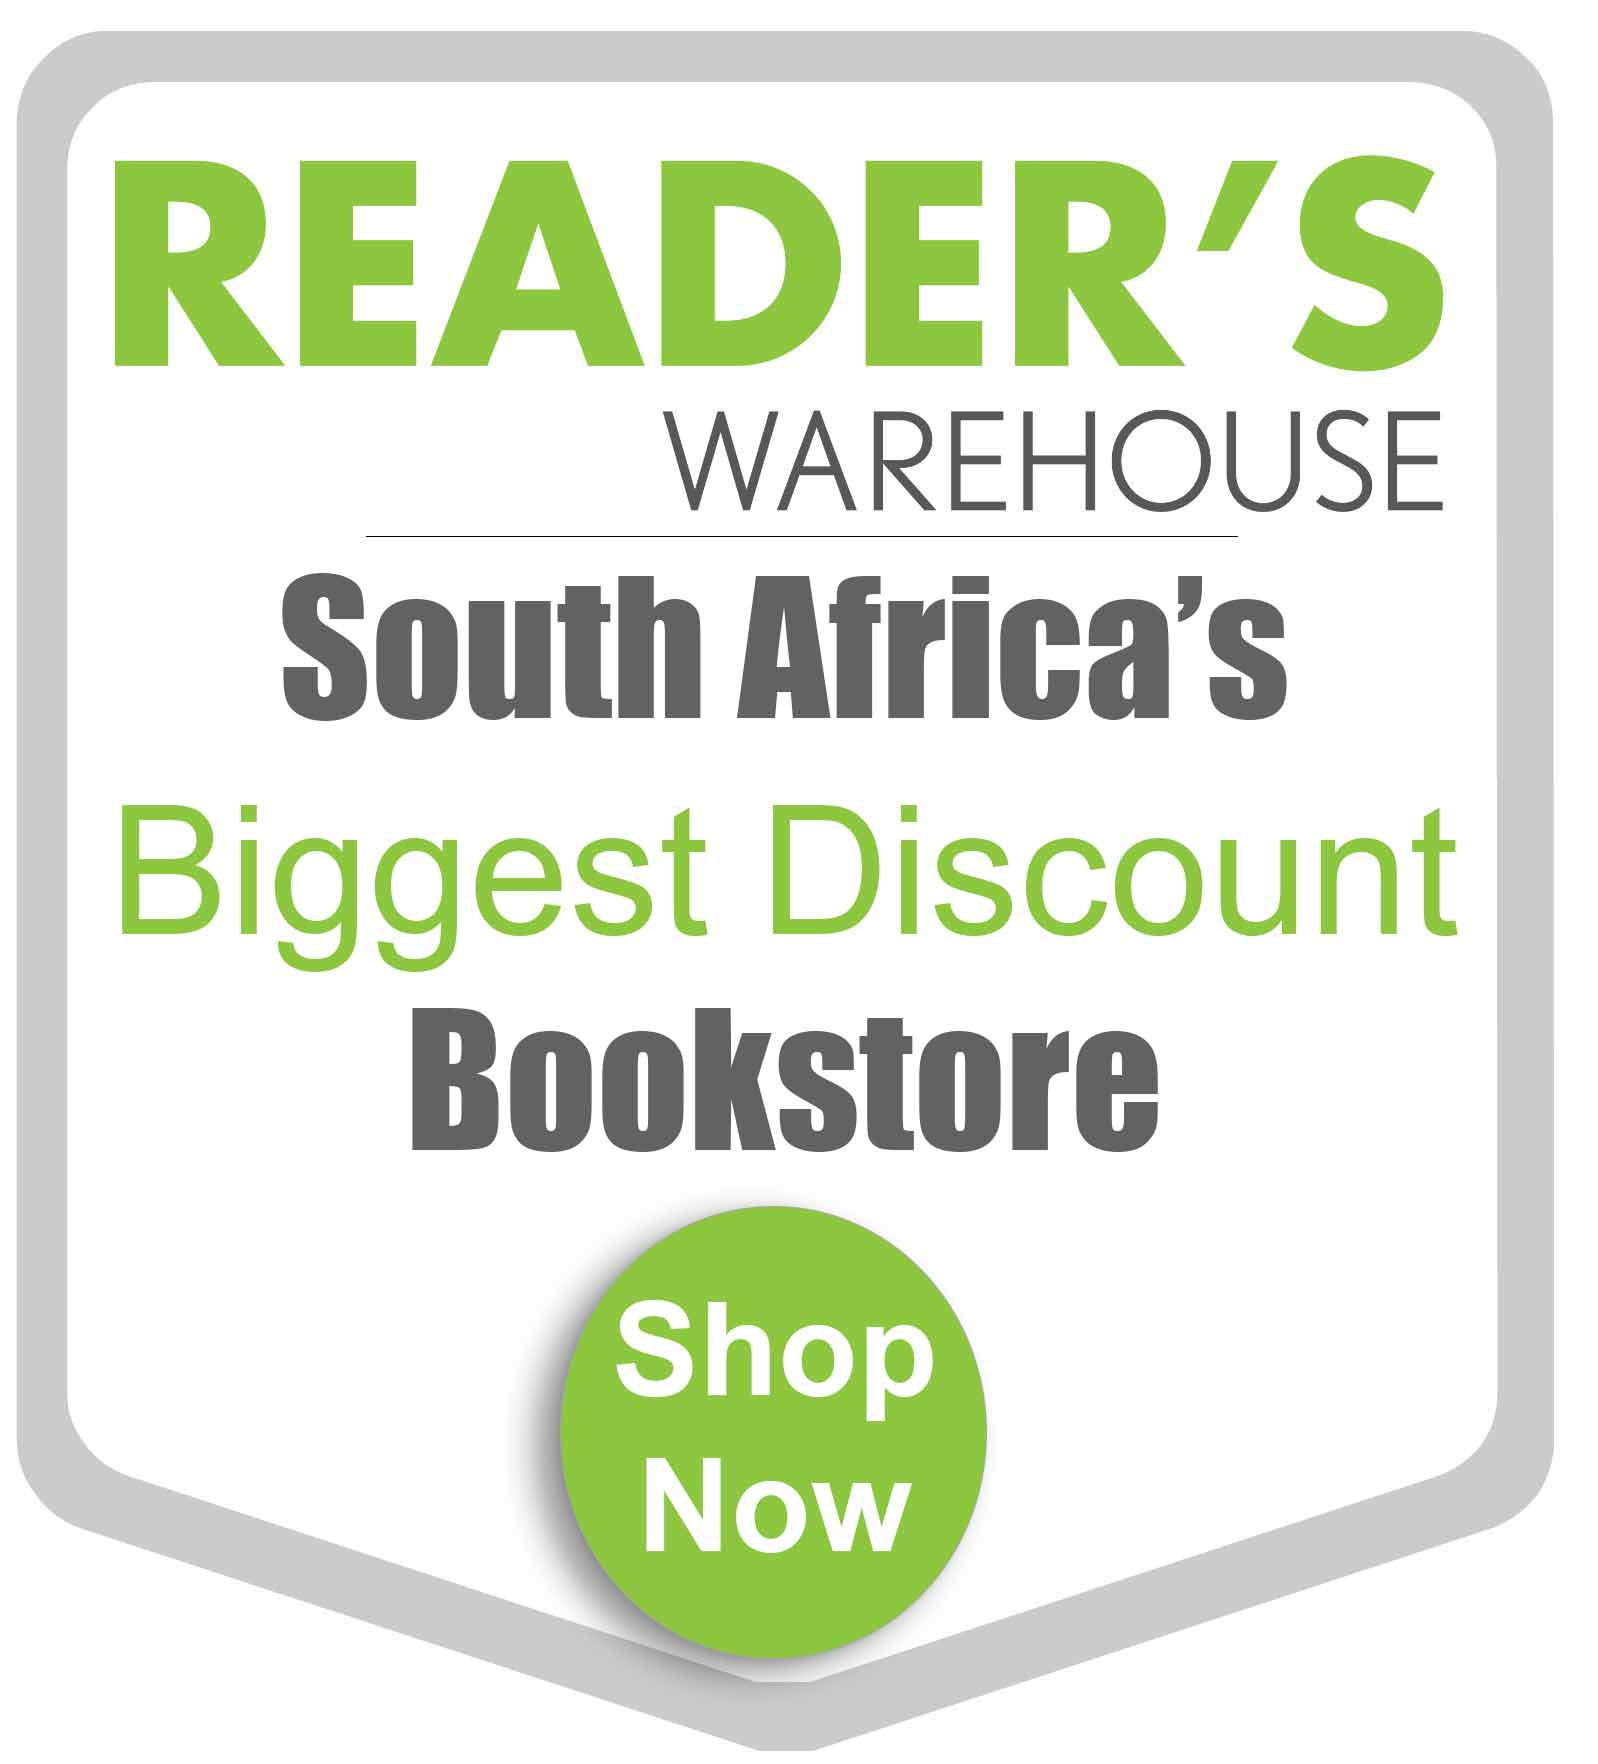 Readers Warehouse: biggest discount bookstore